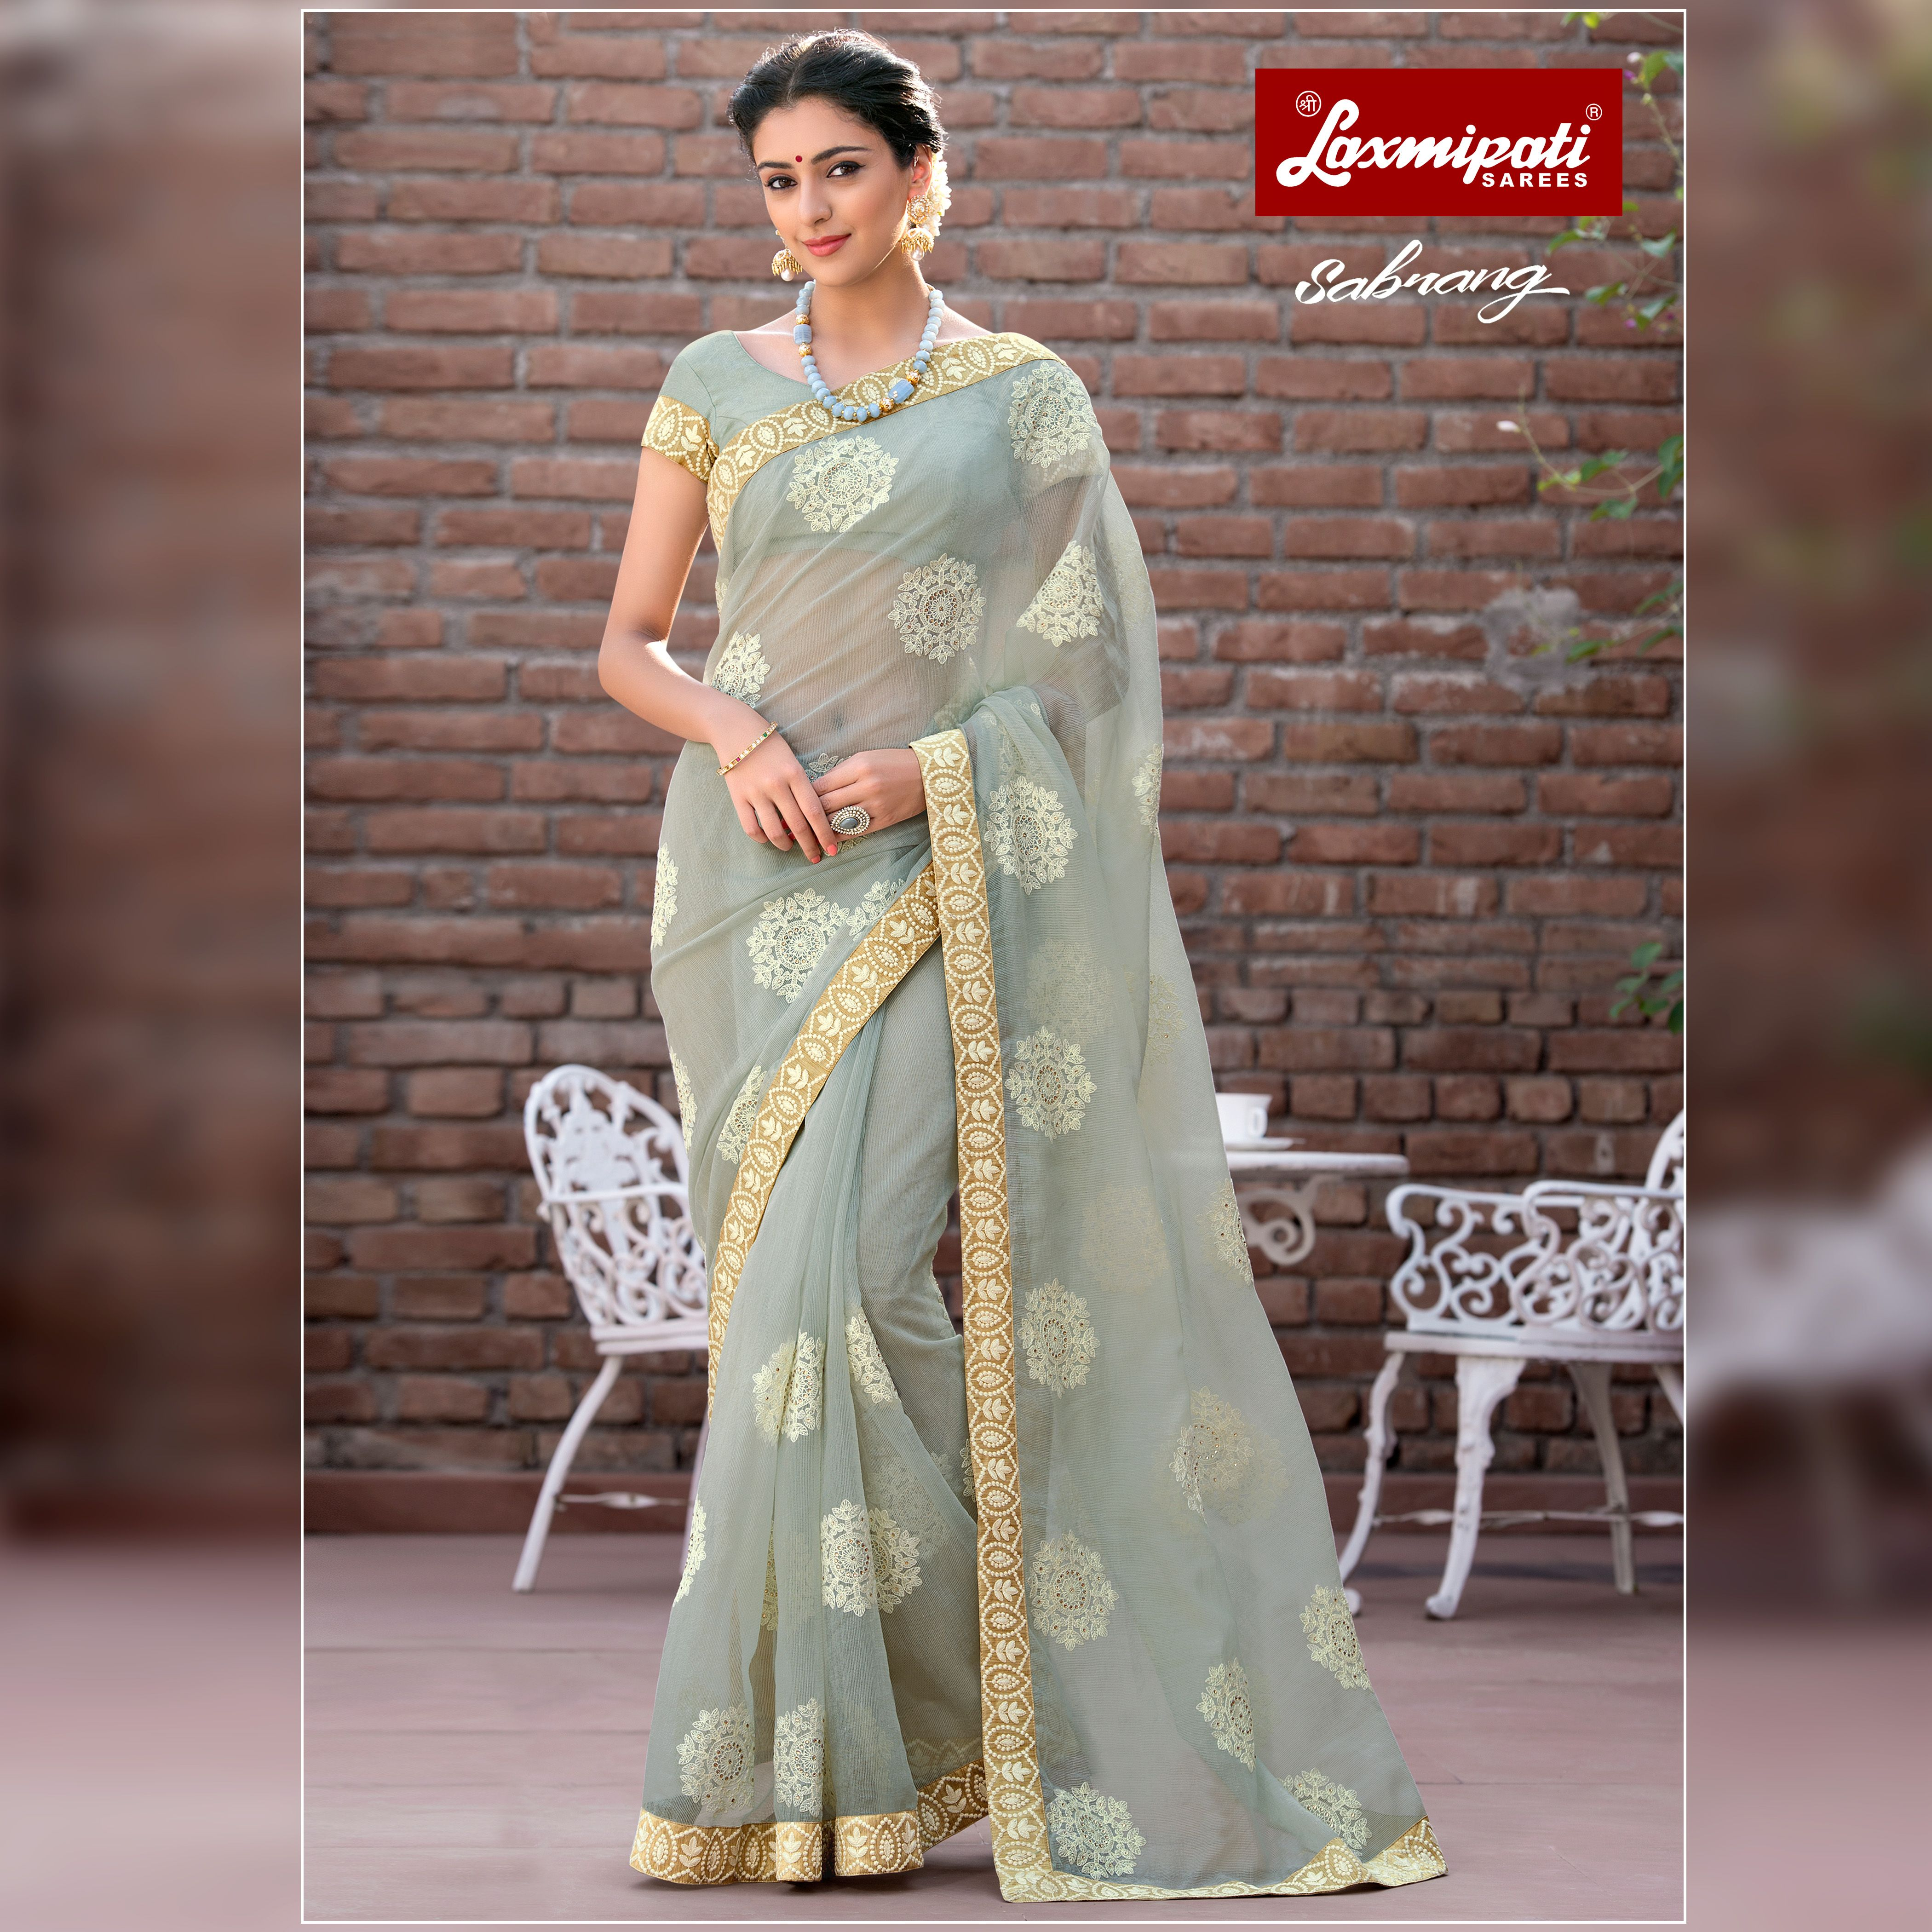 dfbe564a56 Explore the Laxmipati Grey Cotton Supernet Embroidered Saree and Grey  Rawsilk Blouse along with Lace Border for your special occasion.